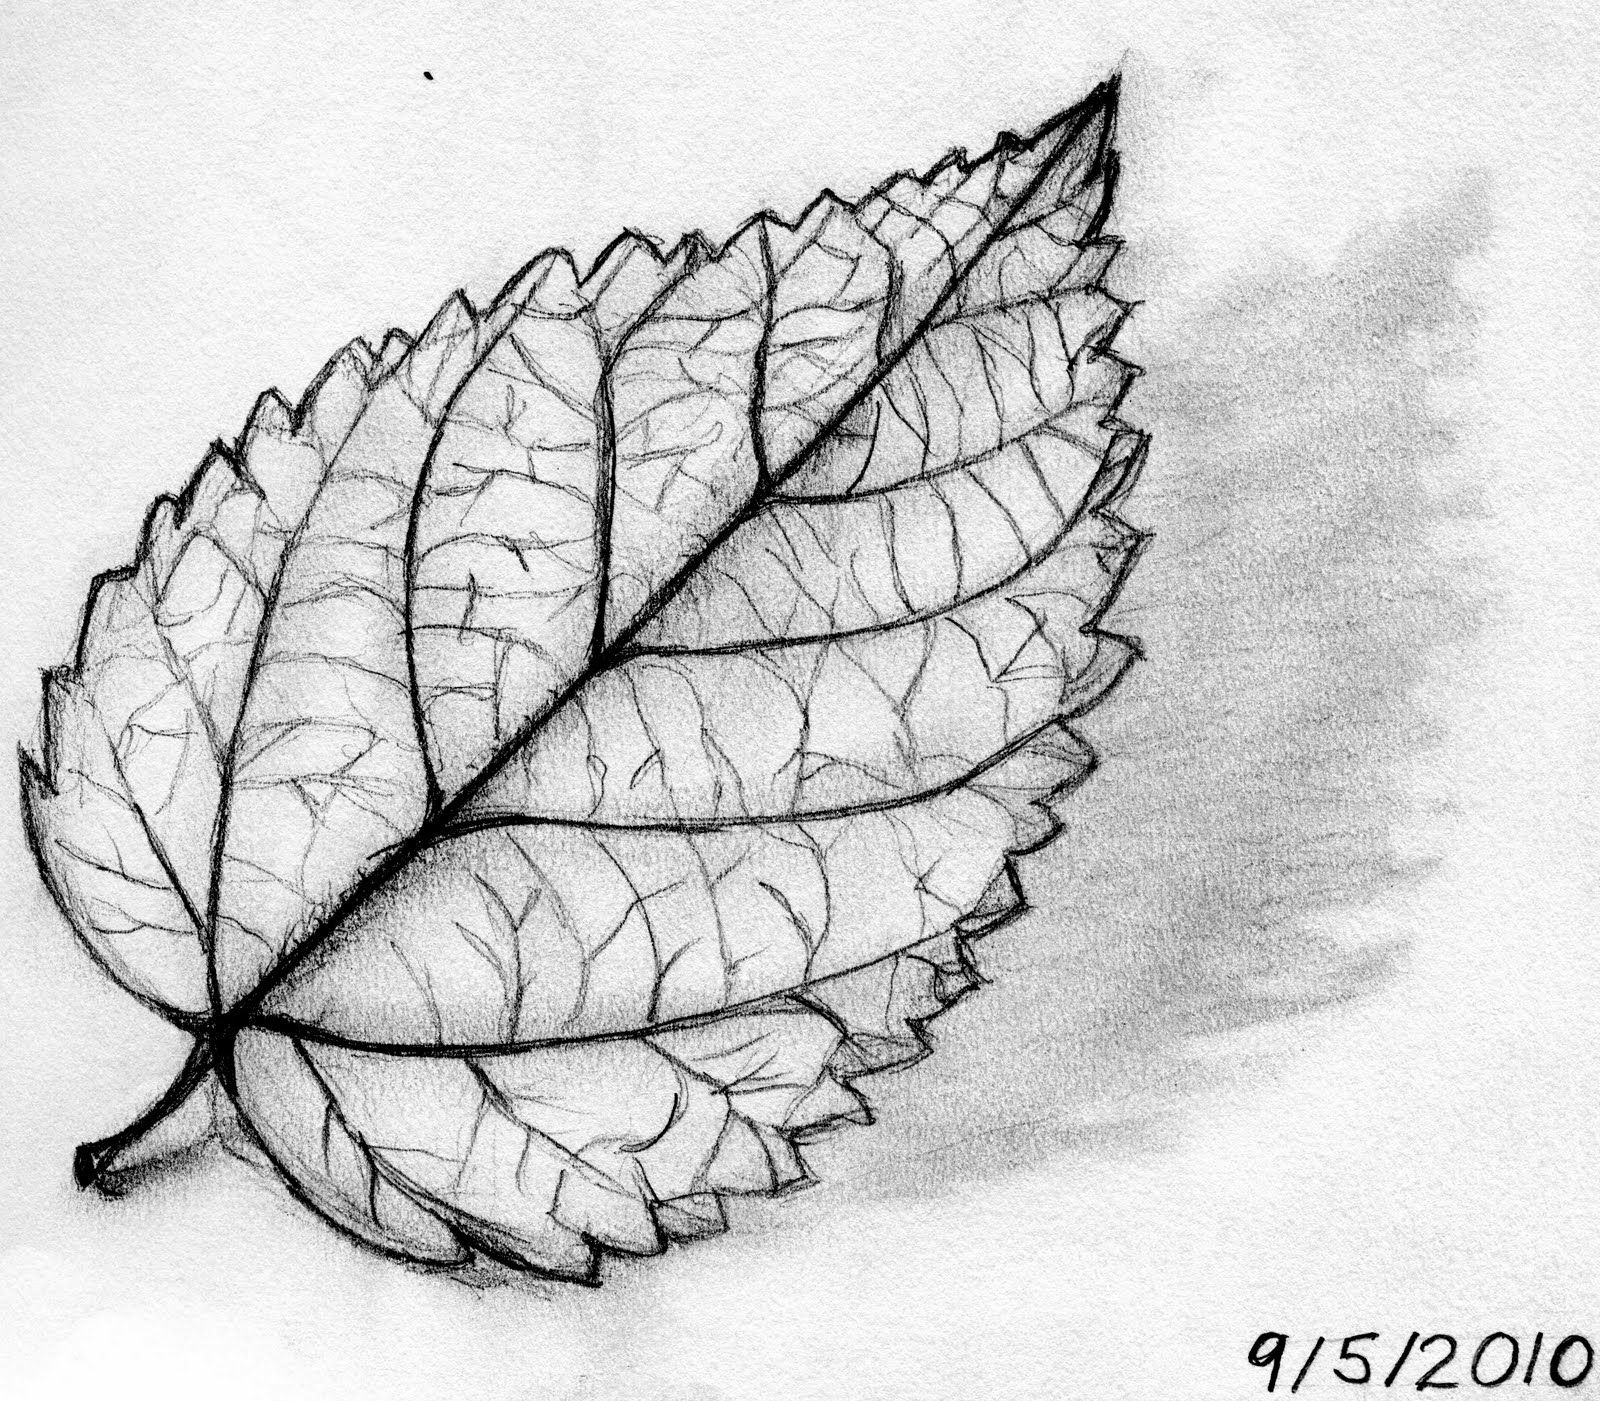 Drawings of leaves sketches drawings of leaves sketches